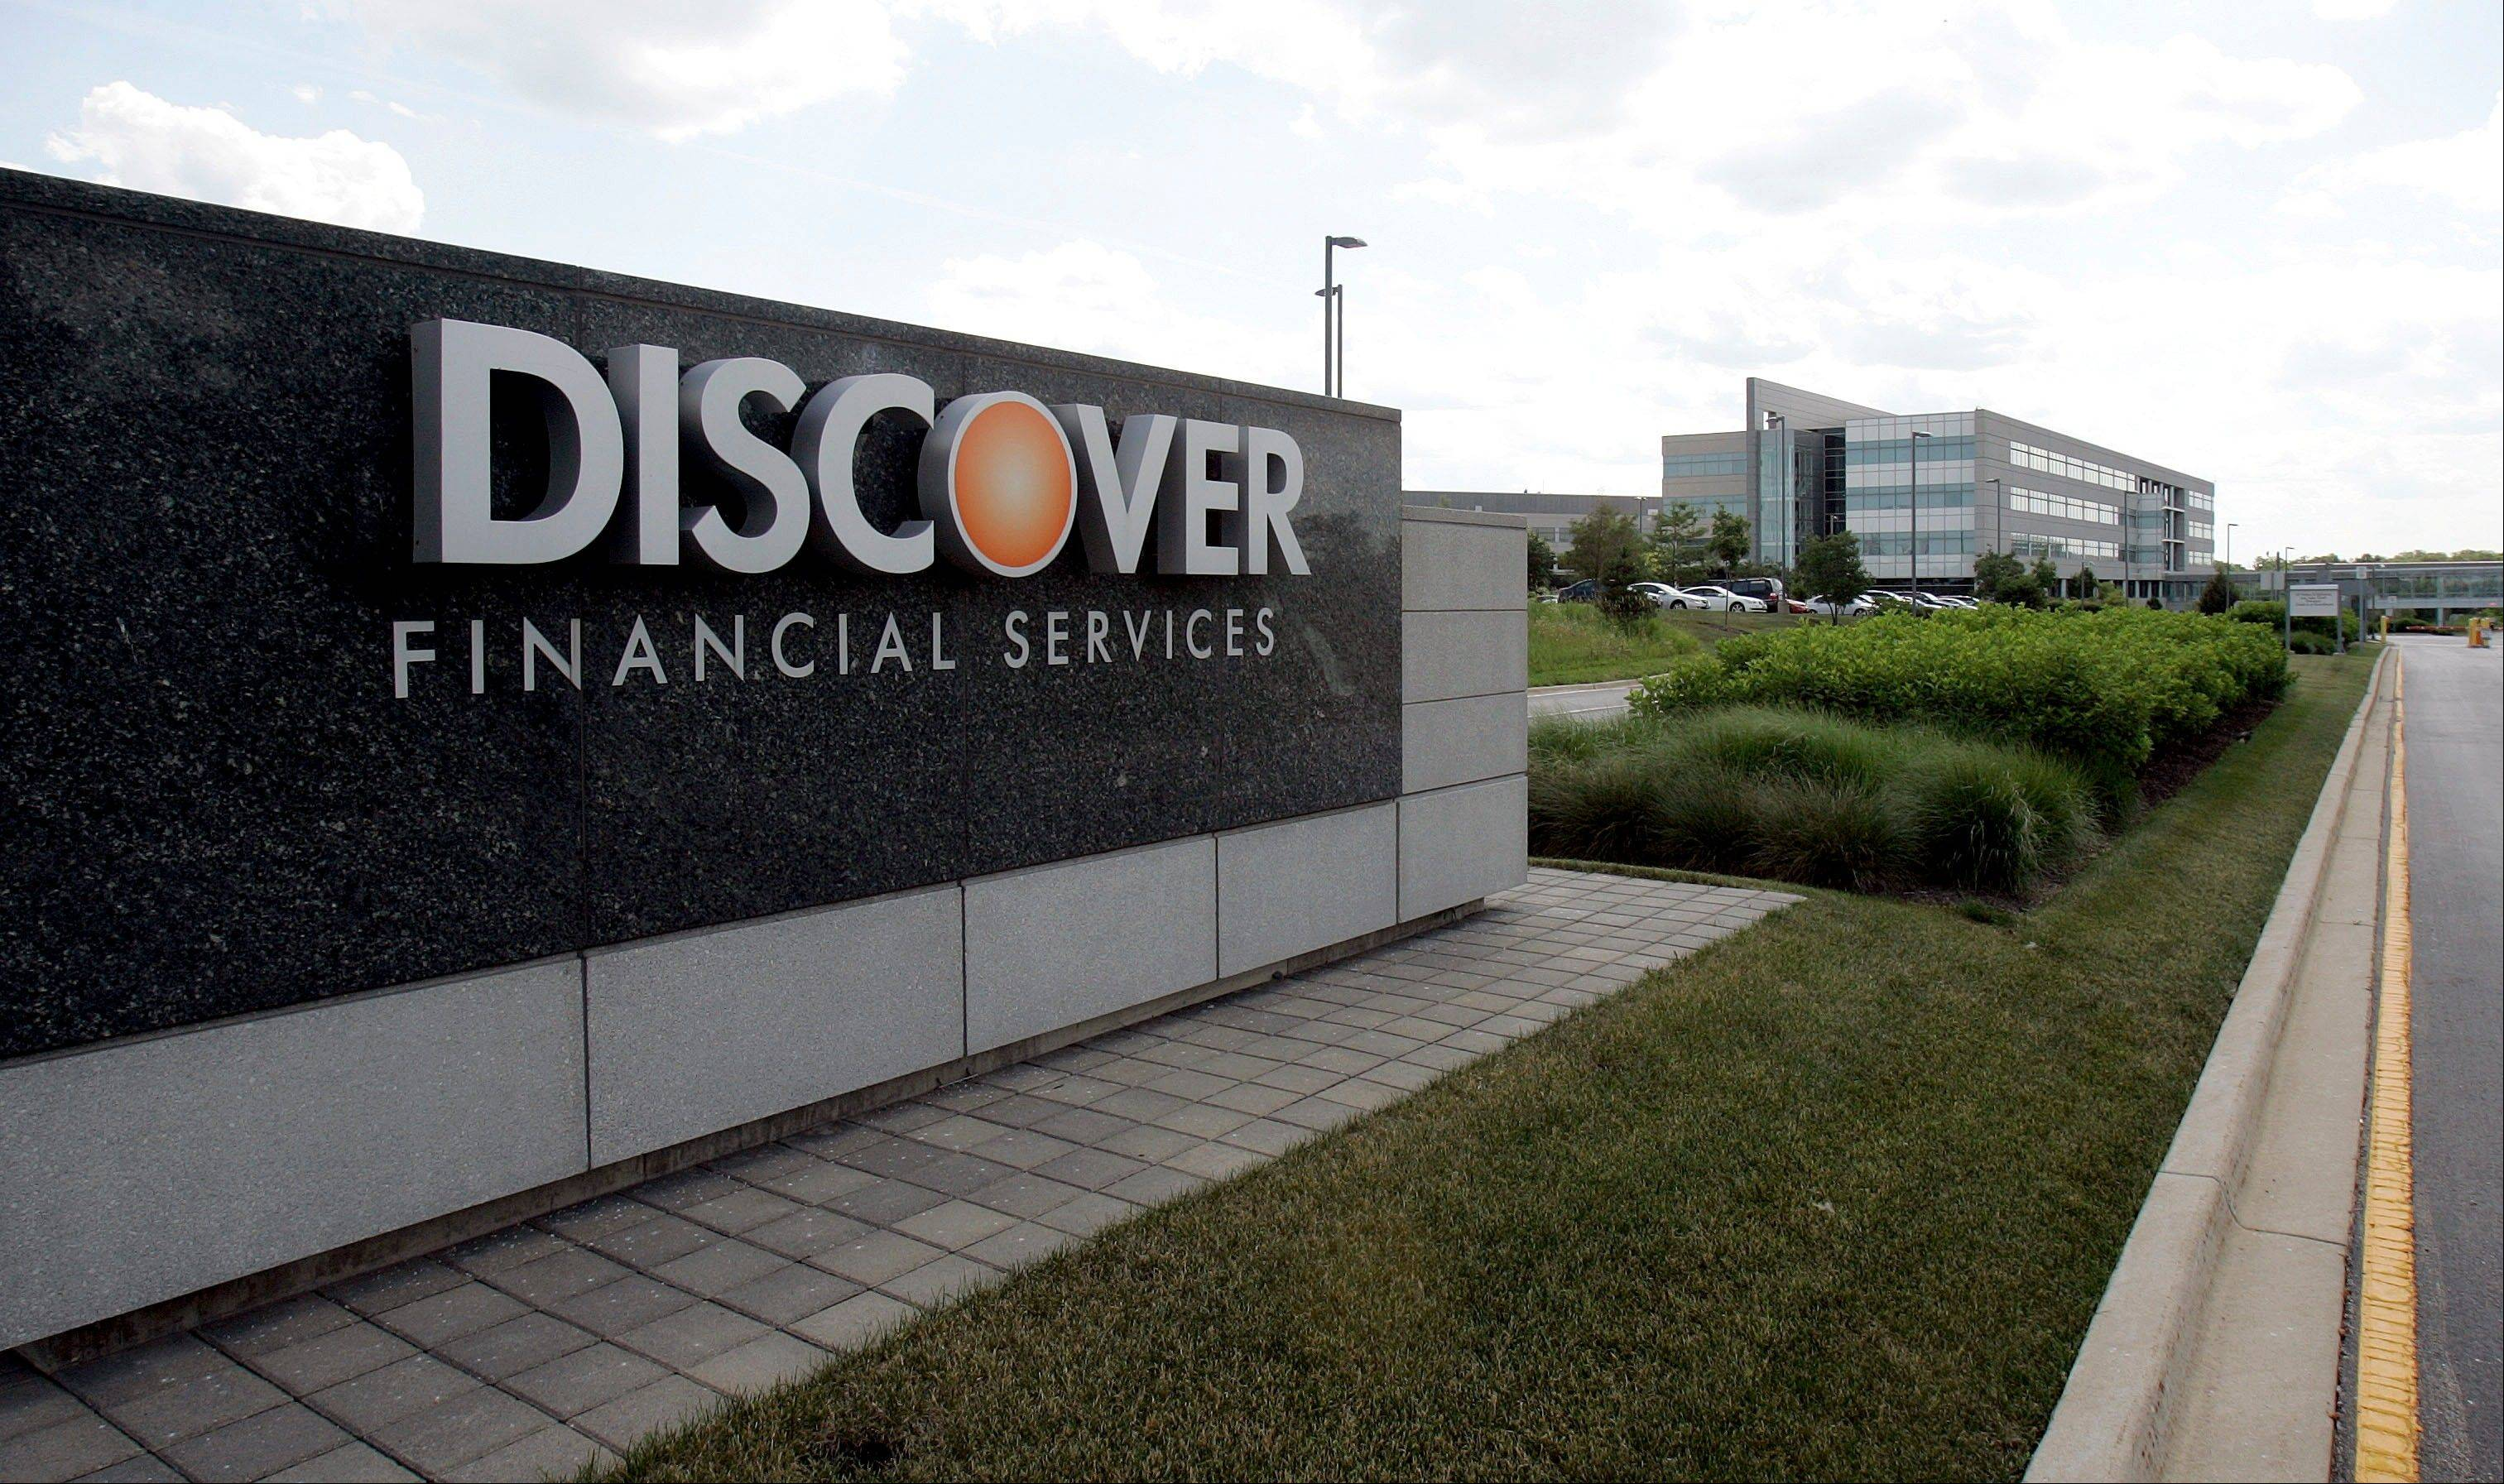 Riverwoods-based Discover Financial Services� net income fell 8 percent in the third quarter, as the lender set aside more funds to cover potential loan losses.